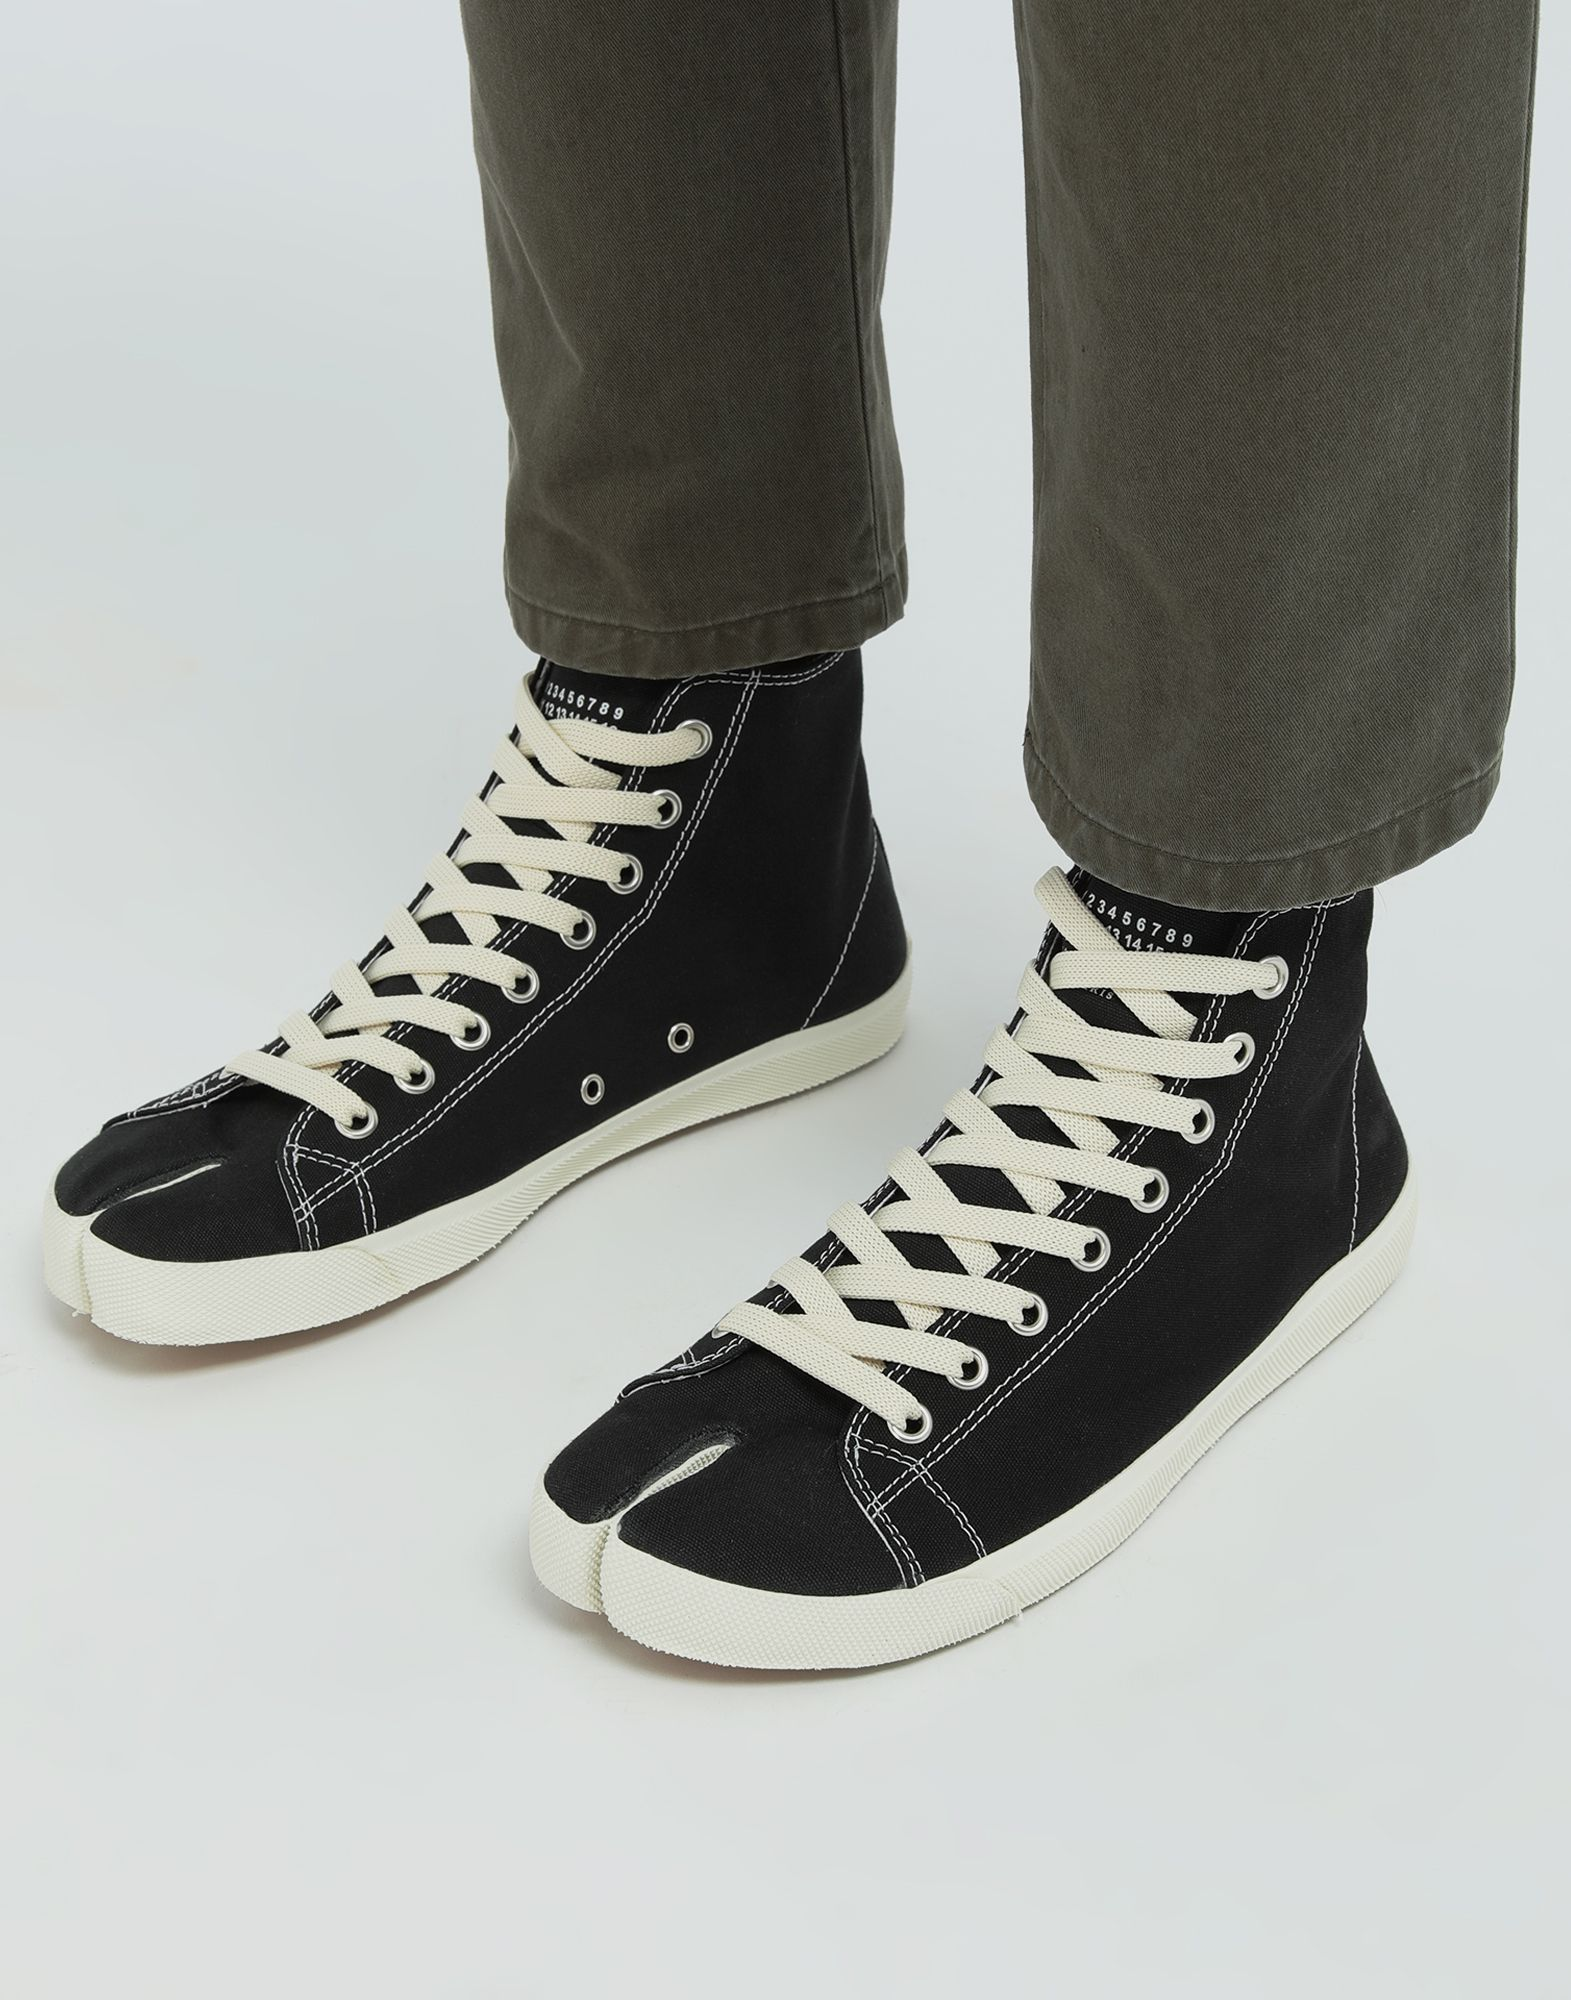 MAISON MARGIELA Tabi high top sneakers Sneakers Tabi Man b